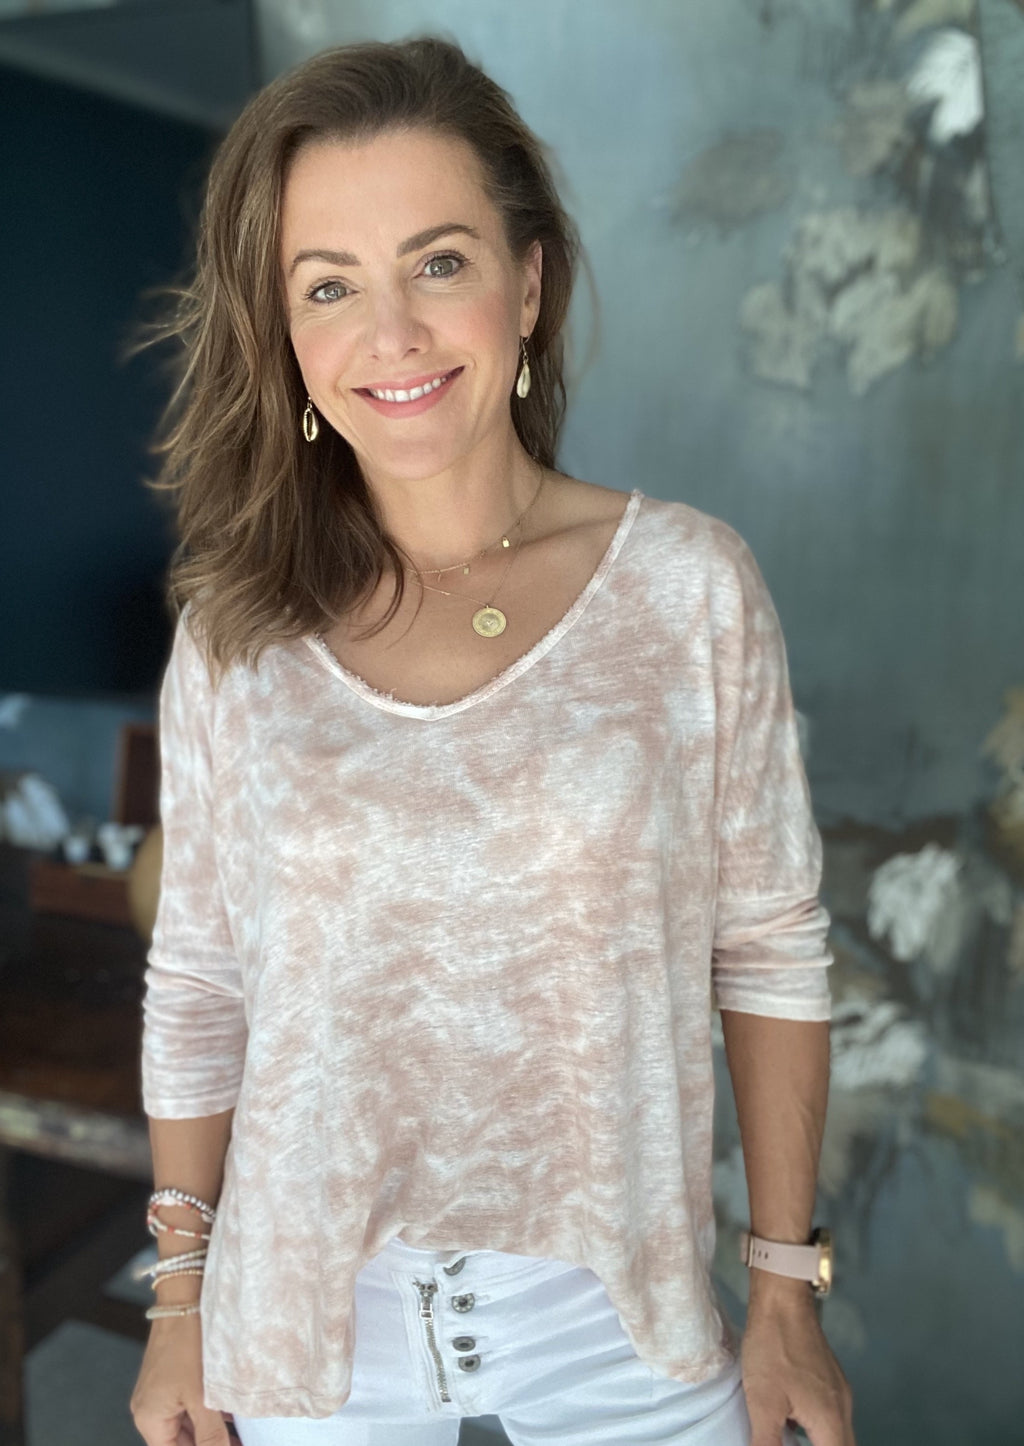 It's Time Top - Dusty, by Ridley  A relaxed long sleeve linen tie die top to through on with denims or white linen pants,  We love it teamed with our White Ocean Sounds Pant, and more casual with our Italian Star White or Musk Button Jeans. But an fave light denims will do!  100% linen jersey  Raw edge V-neck  3/4 sleeves  Relaxed fit  Made in Italy